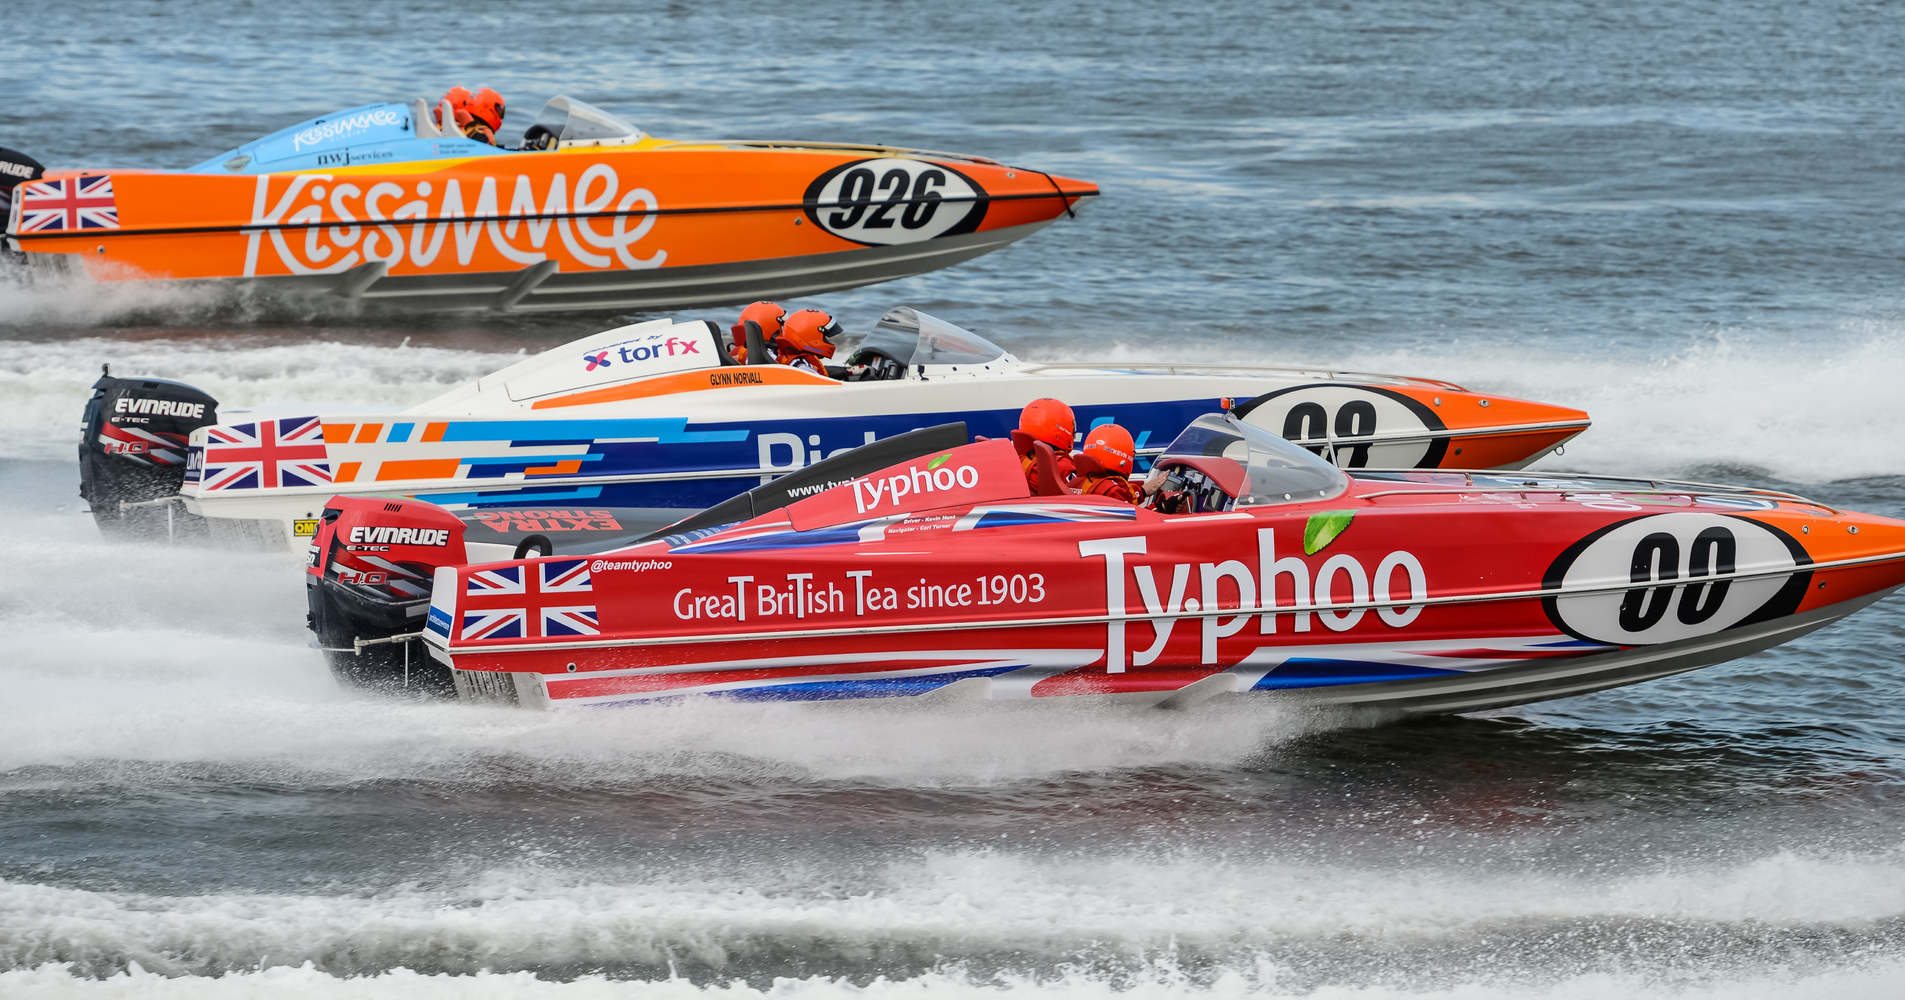 There was some close racing as the teams competed in a number of heats across the day